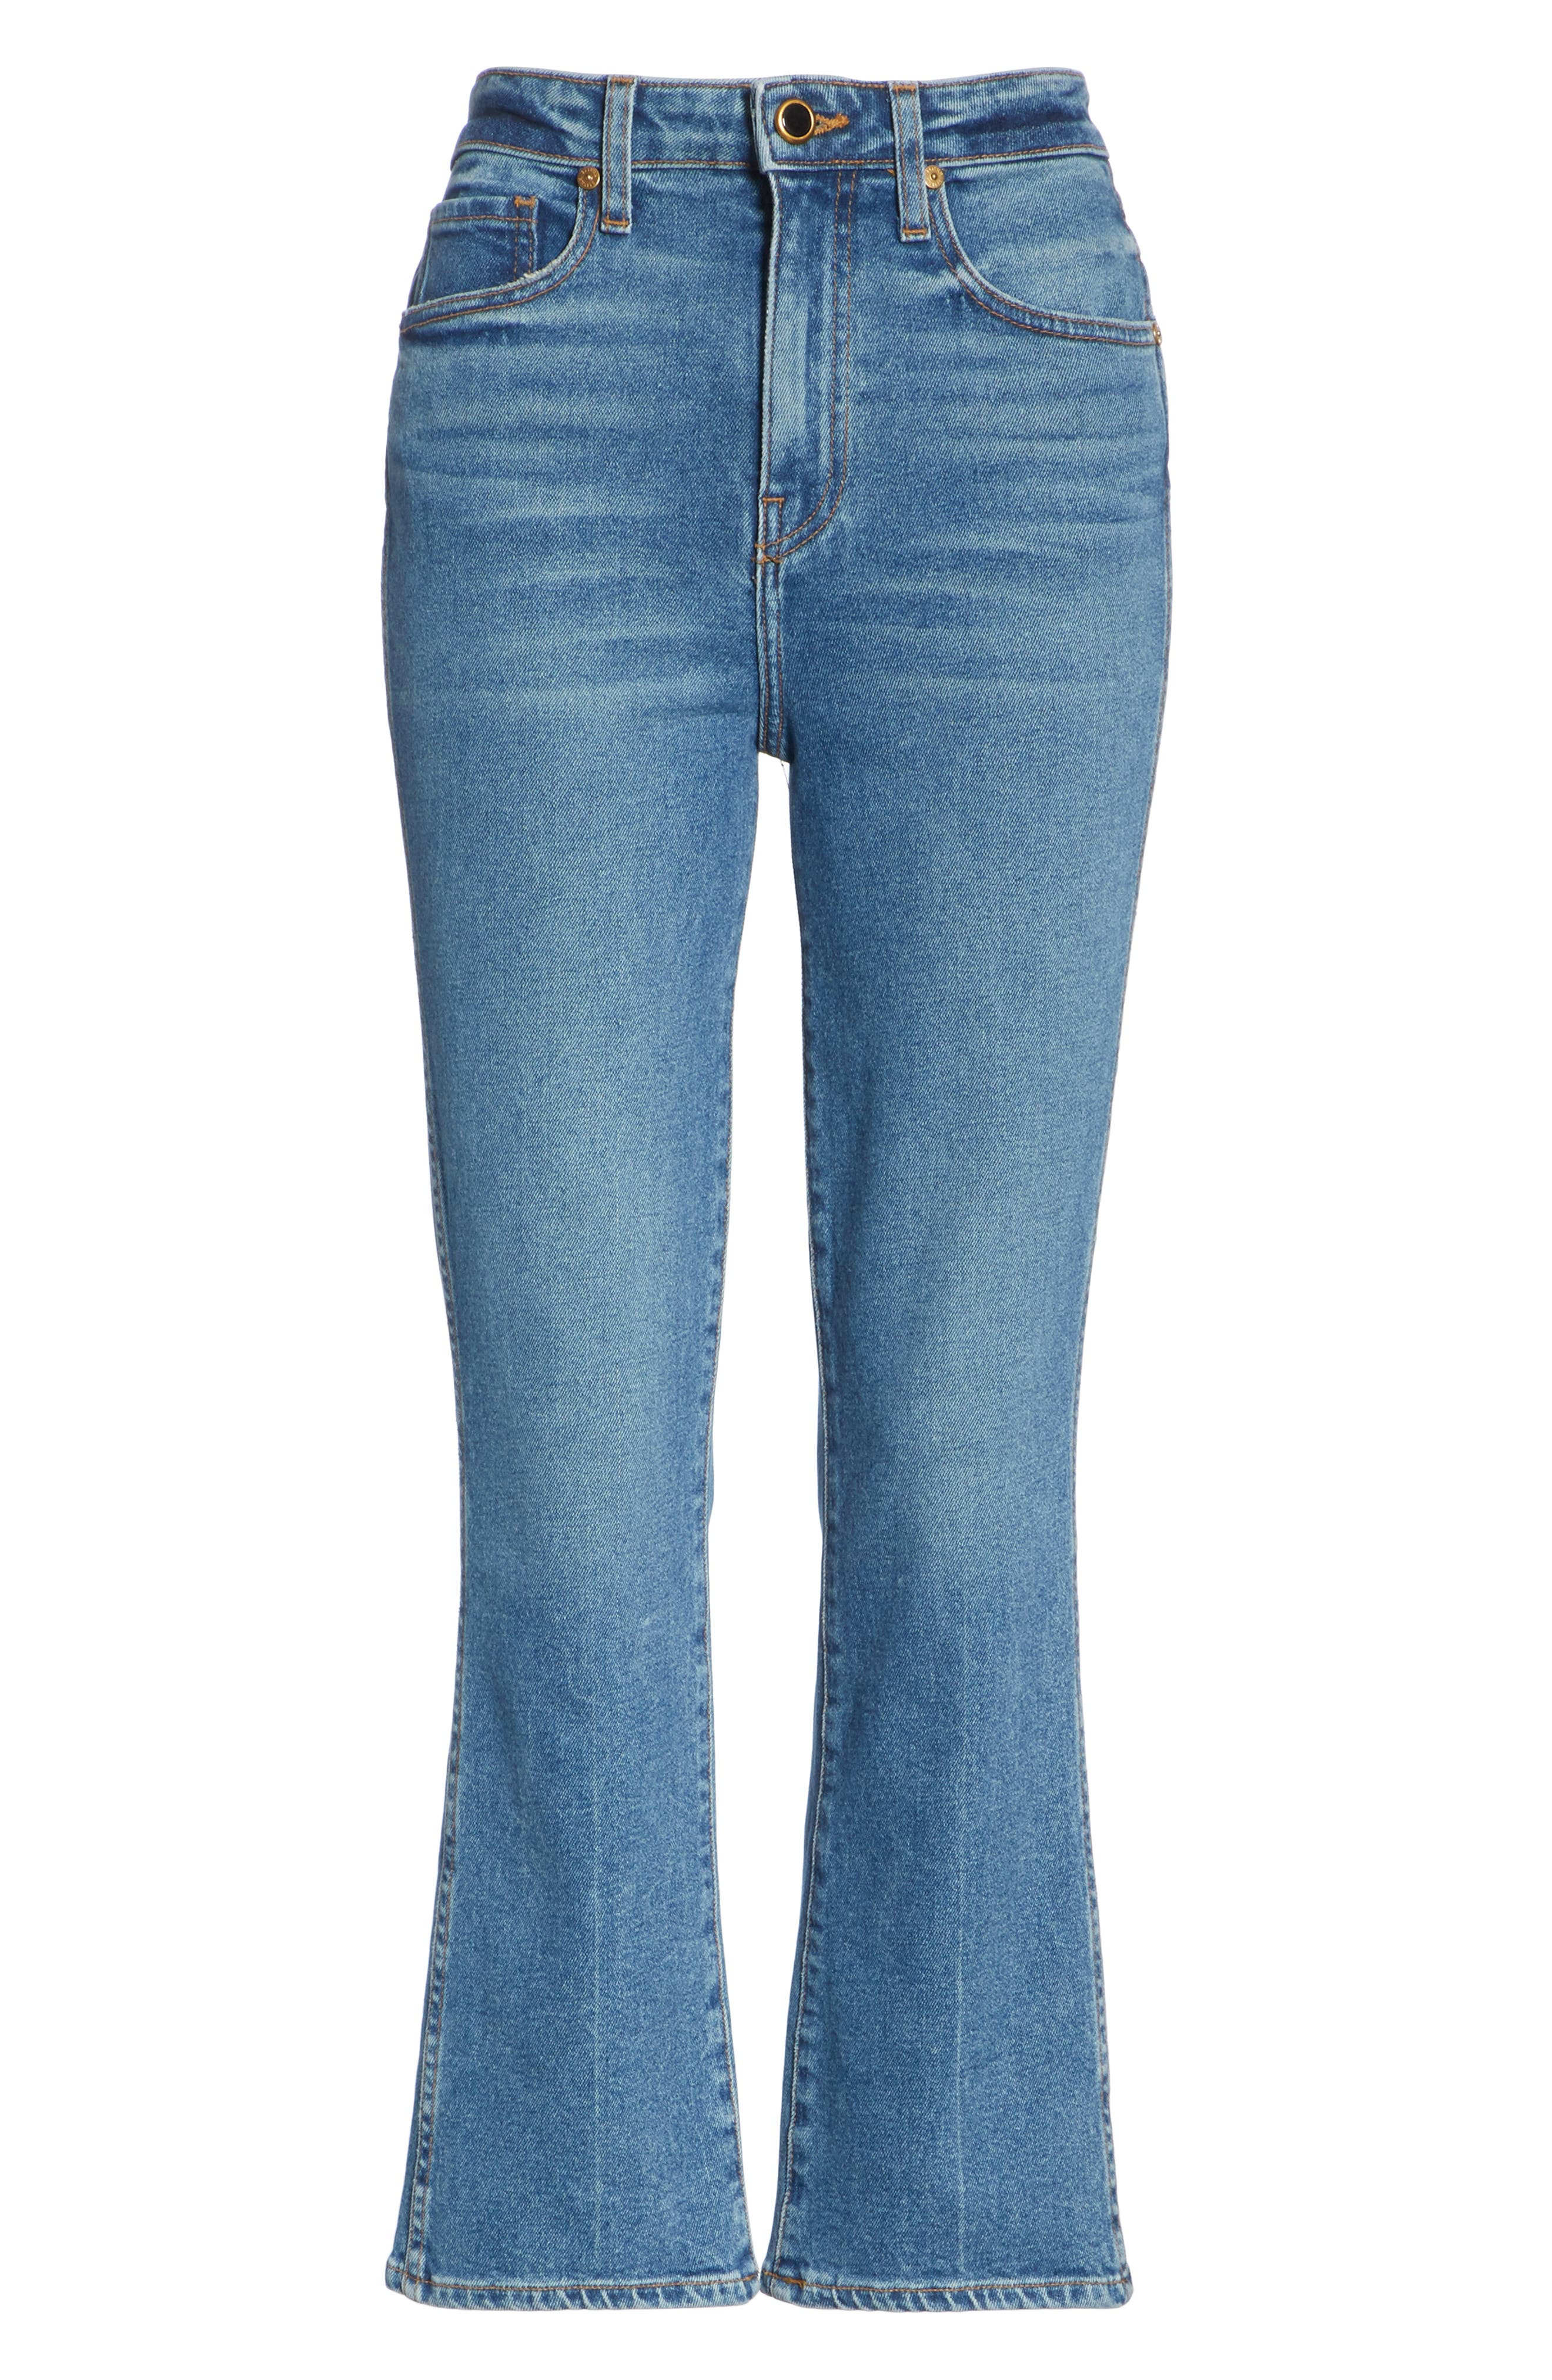 Benny Crop Flare Jeans,                             Alternate thumbnail 7, color,                             VINTAGE WASH